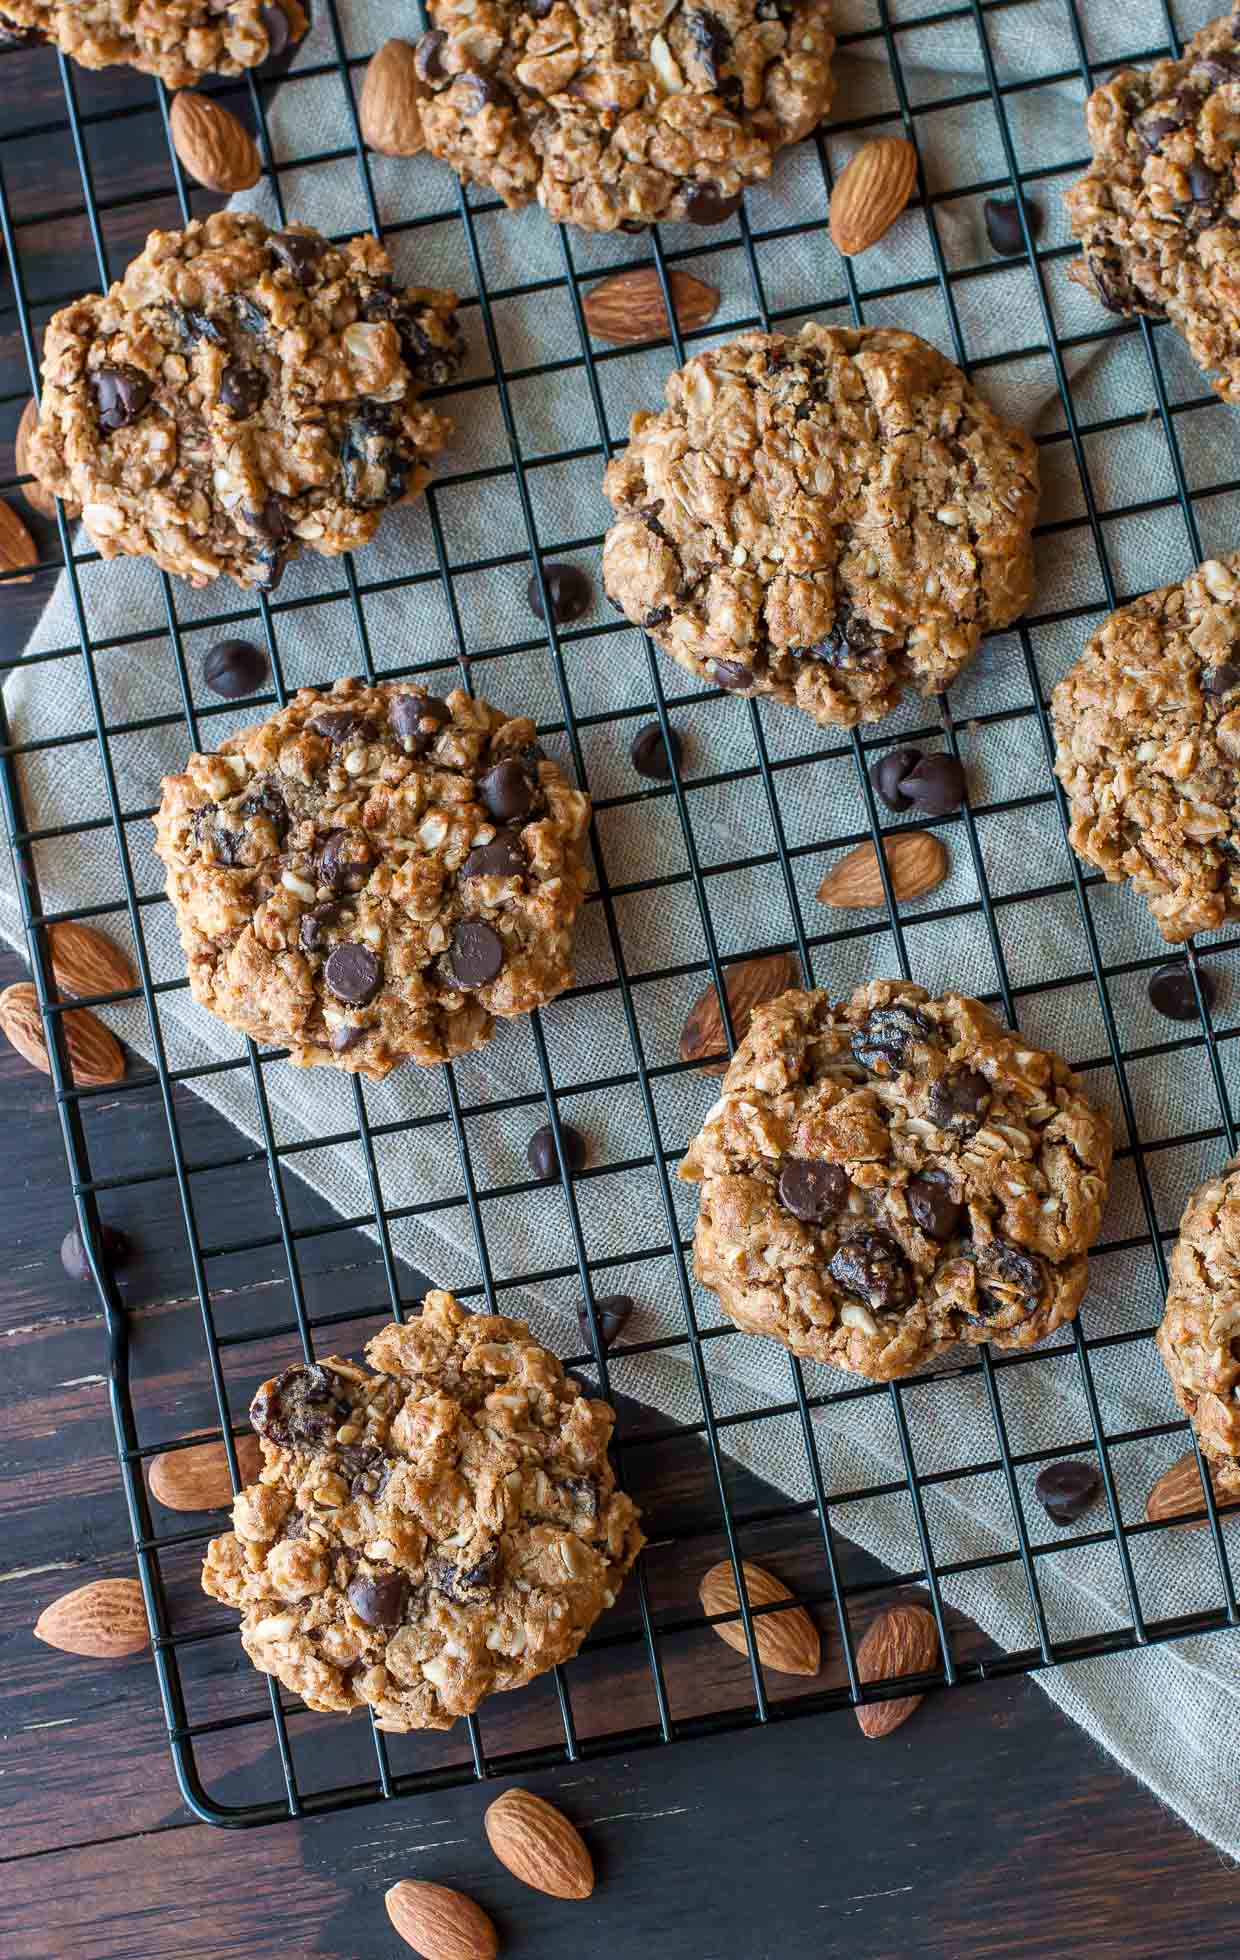 C is for COOKIES!!!!! These healthy Gluten-Free Chocolate Cherry Oatmeal Cookies are packed with simple ingredients for a delicious snack that'll help you power through your day!